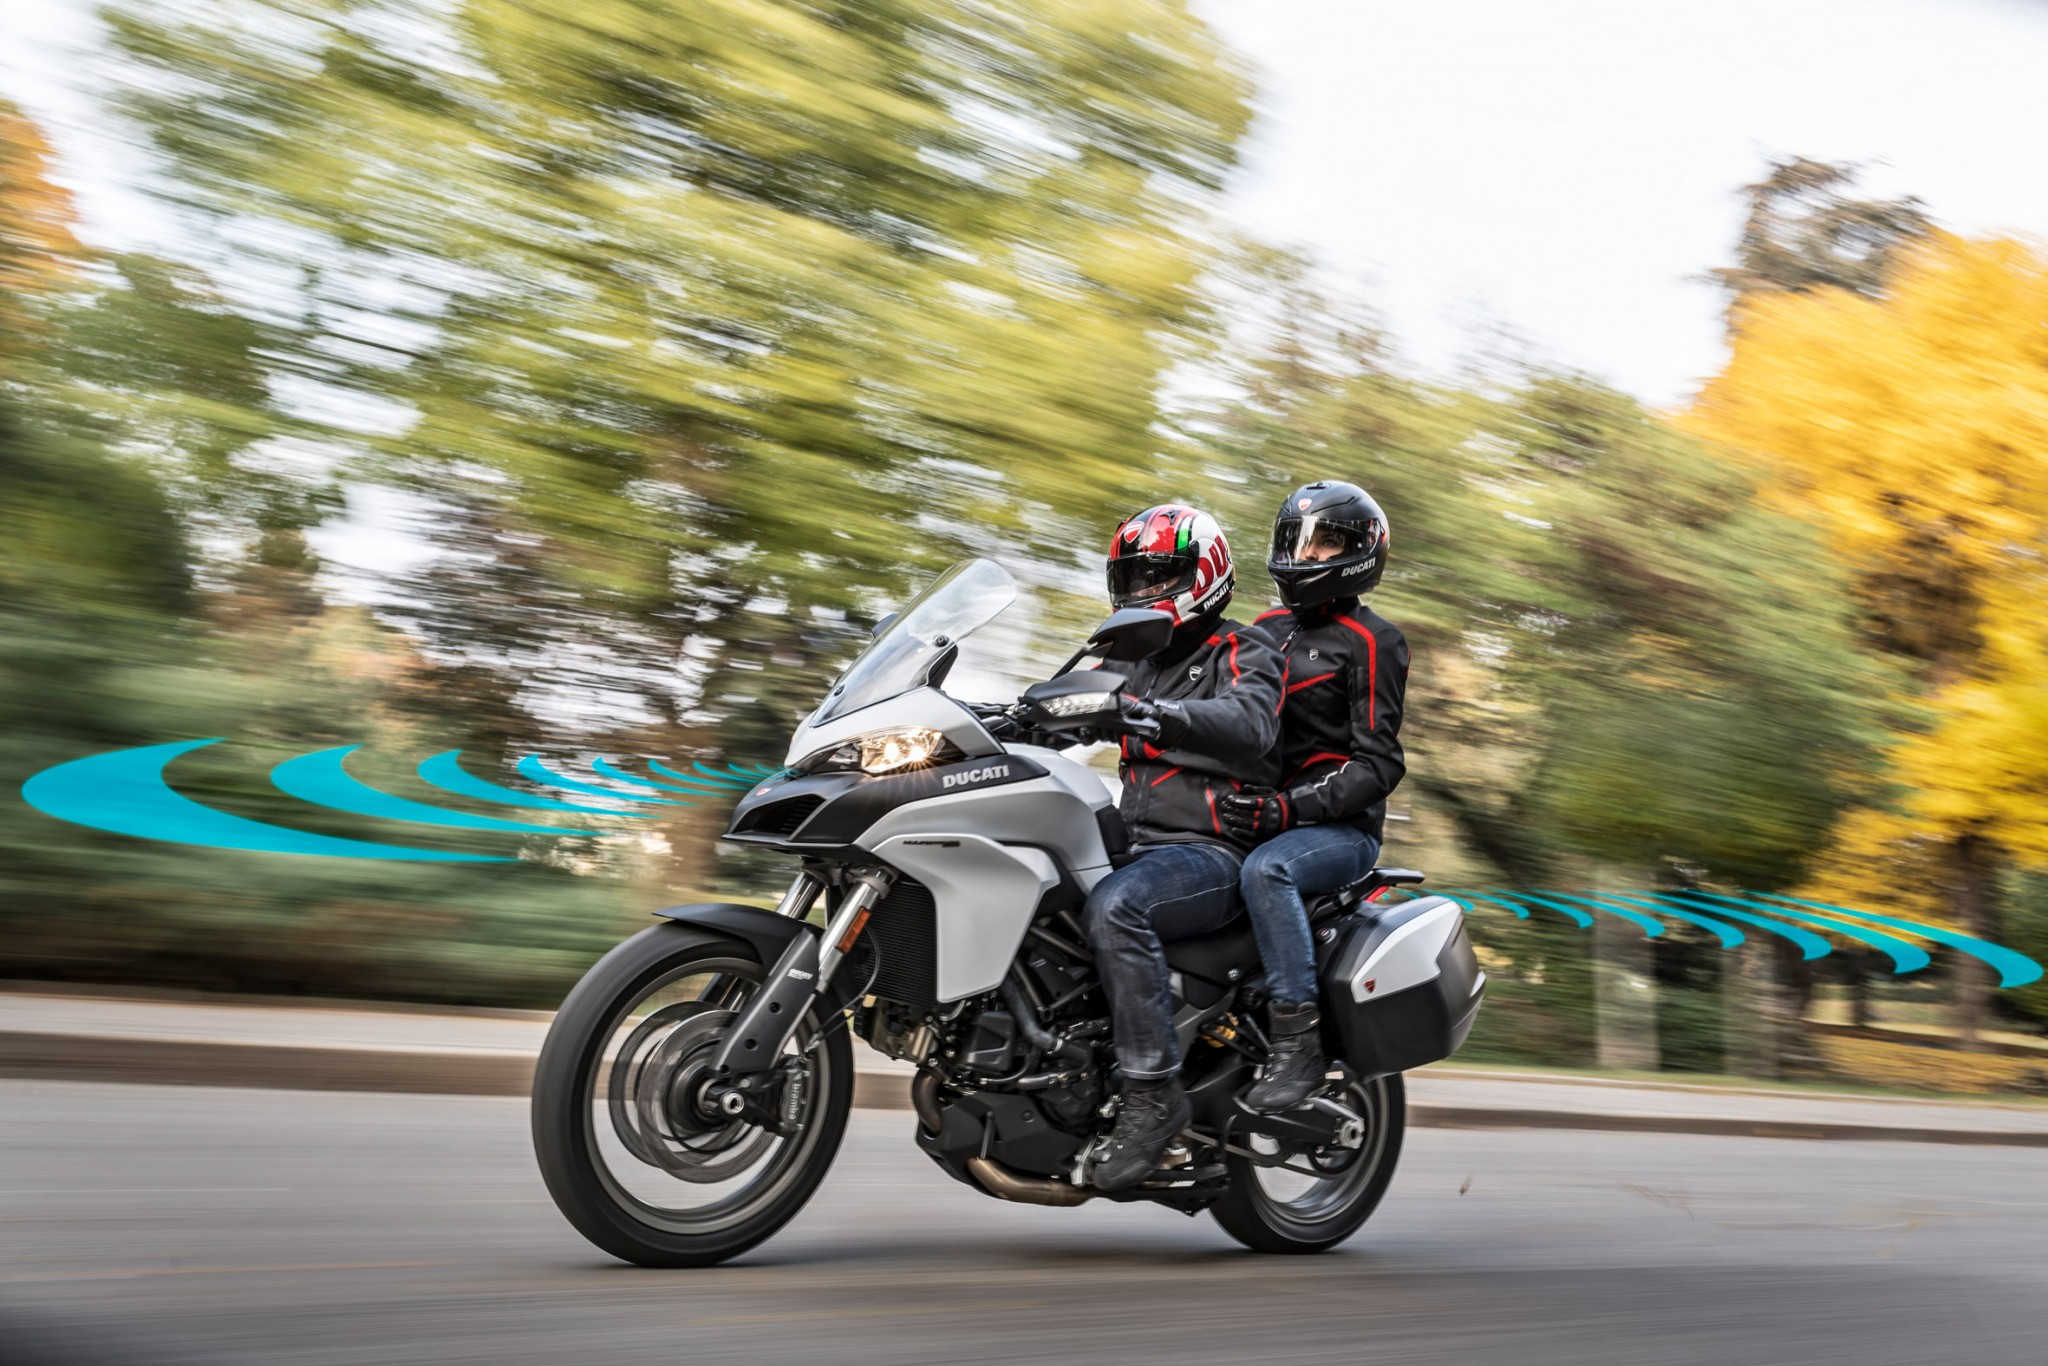 Motorcycle Parts & Accessories from Japan - Webike Japan